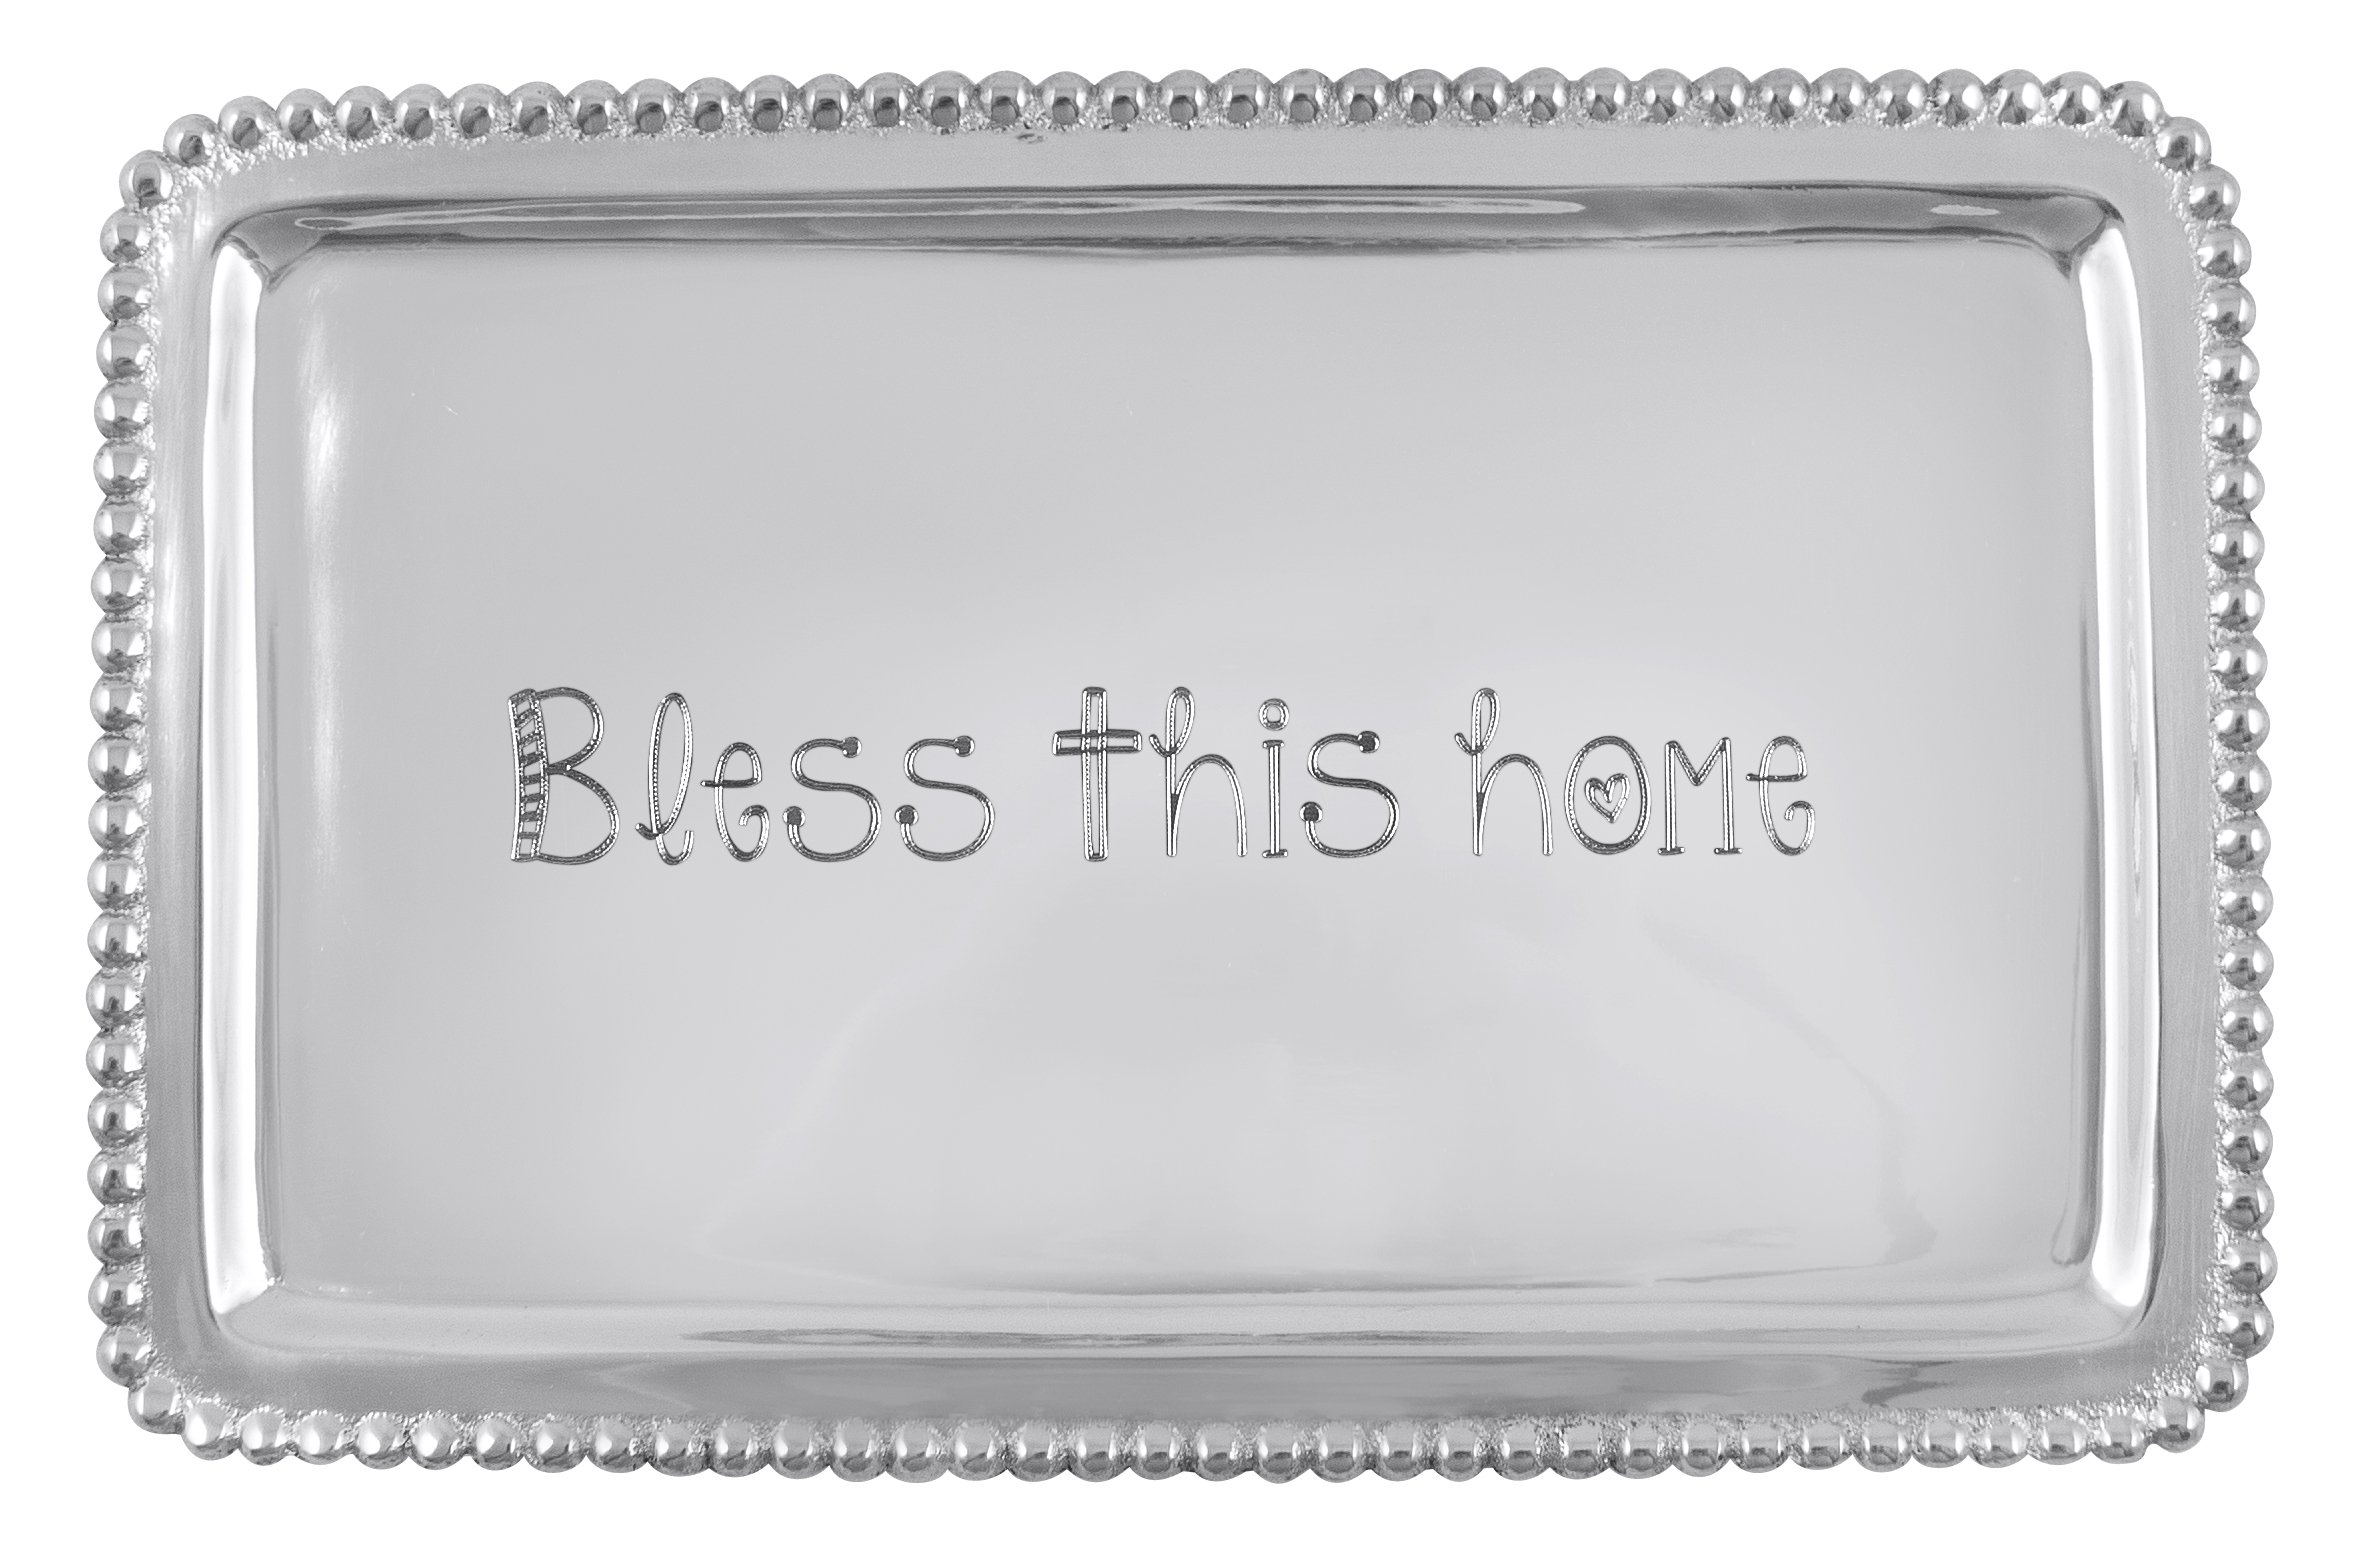 Mariposa Bless this home Buffet Tray